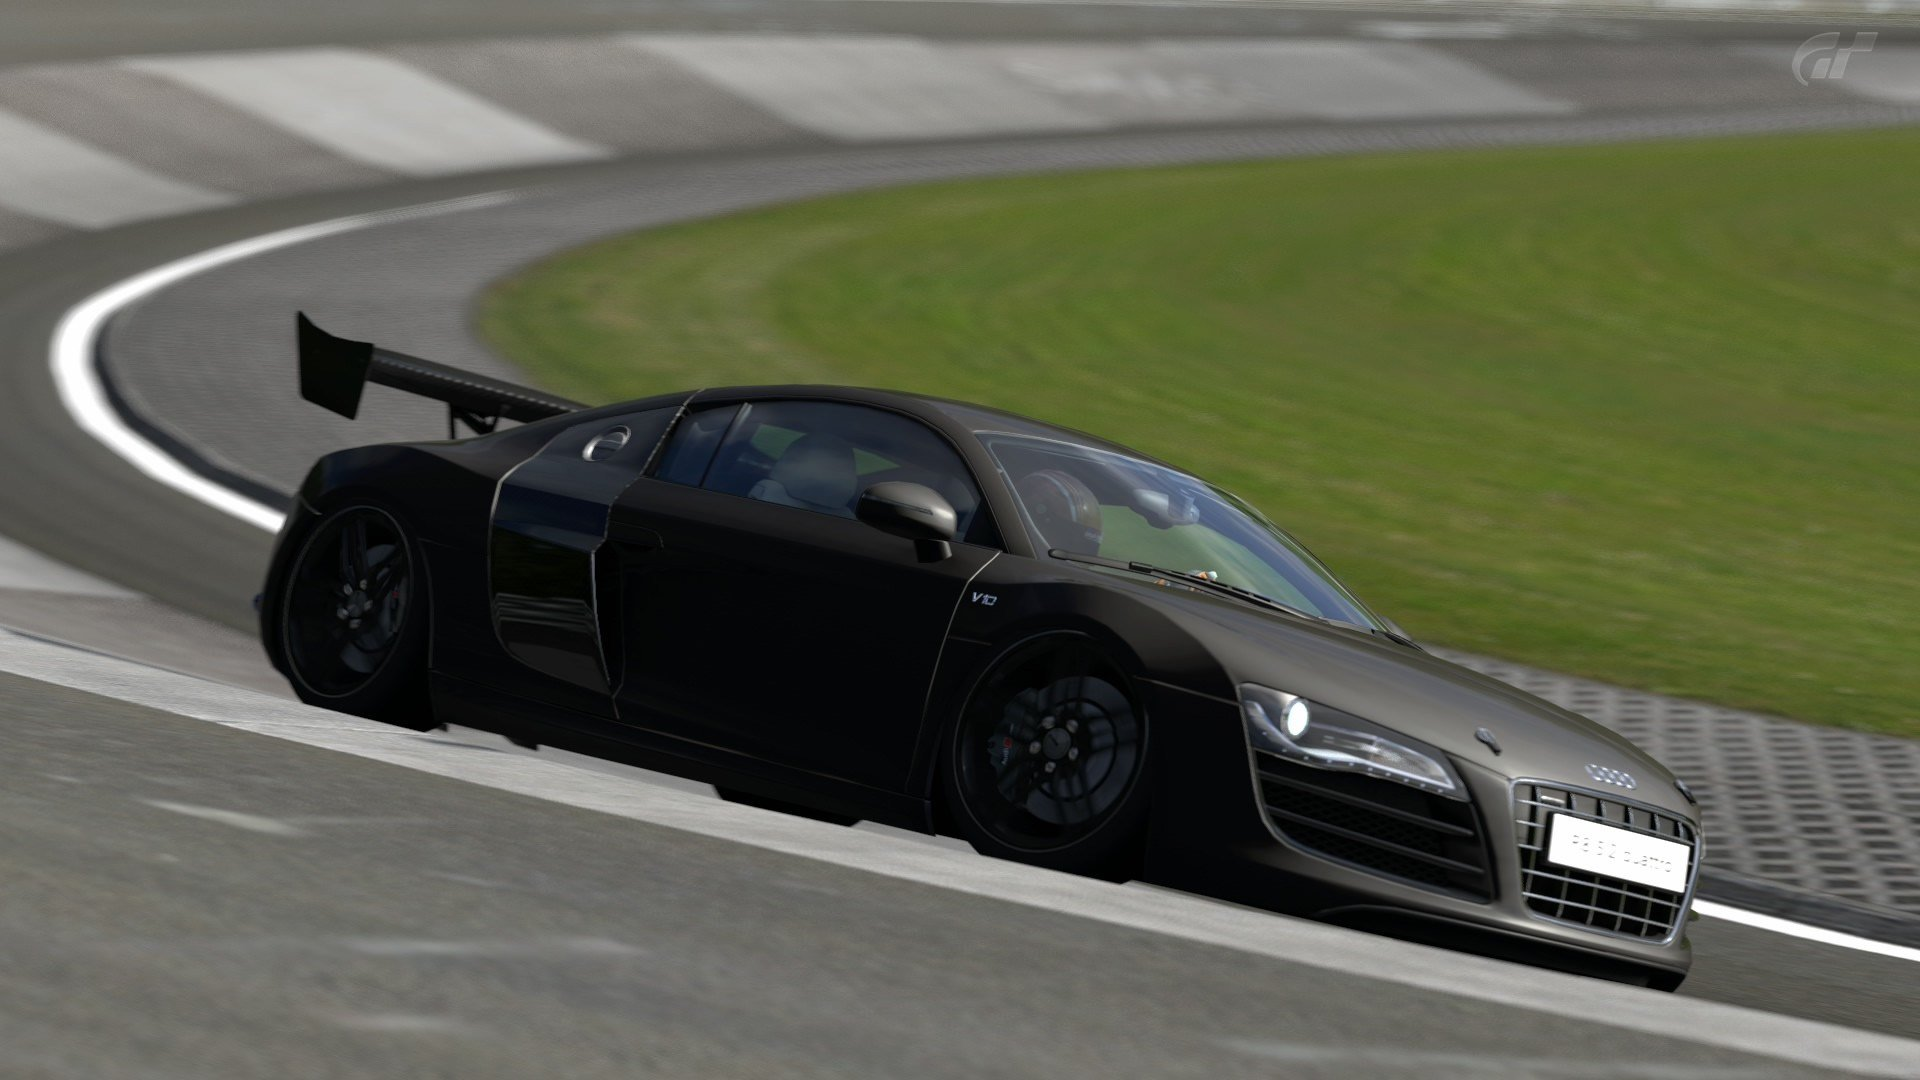 Latest Video Games Cars Vehicles Audi R8 Gran Turismo 5 Free Download